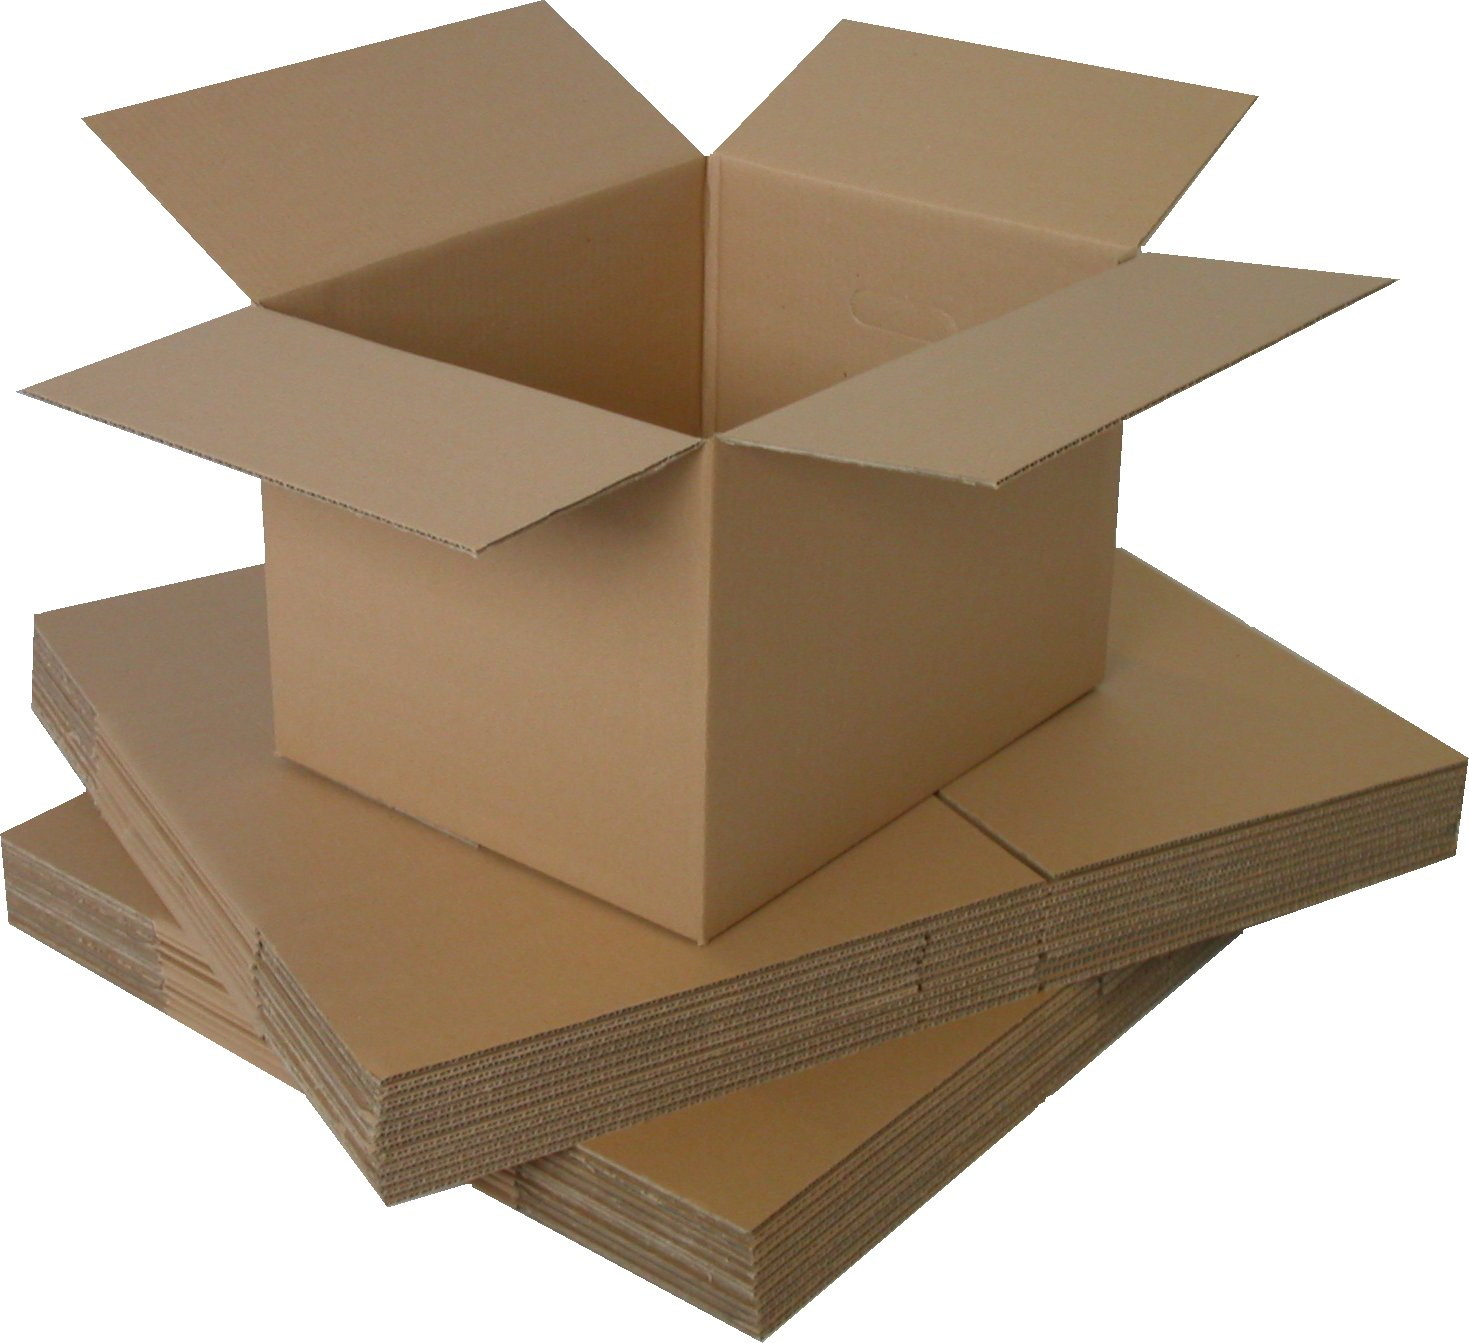 10 x Double Wall Boxes (377 x 283 x 279mm)